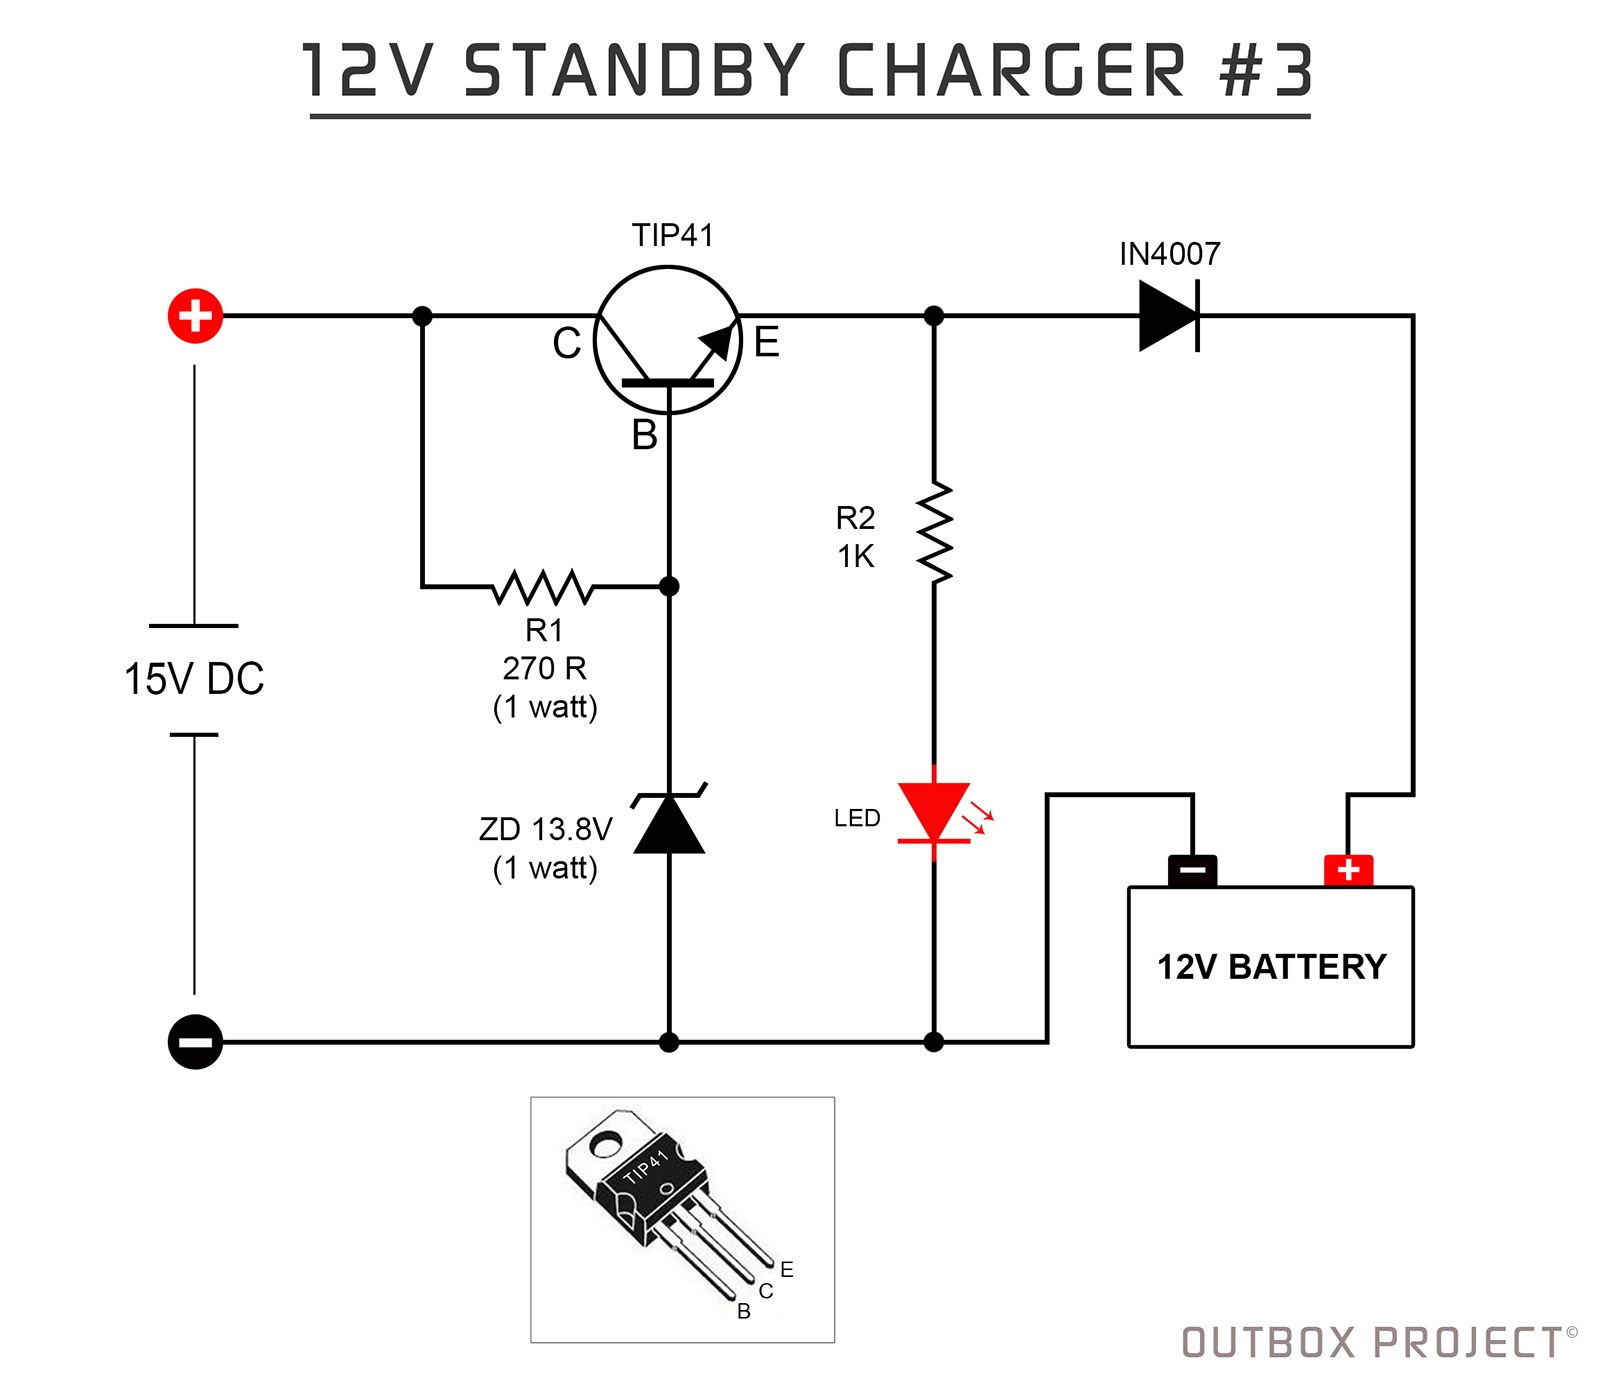 12v Battery Standby Charger